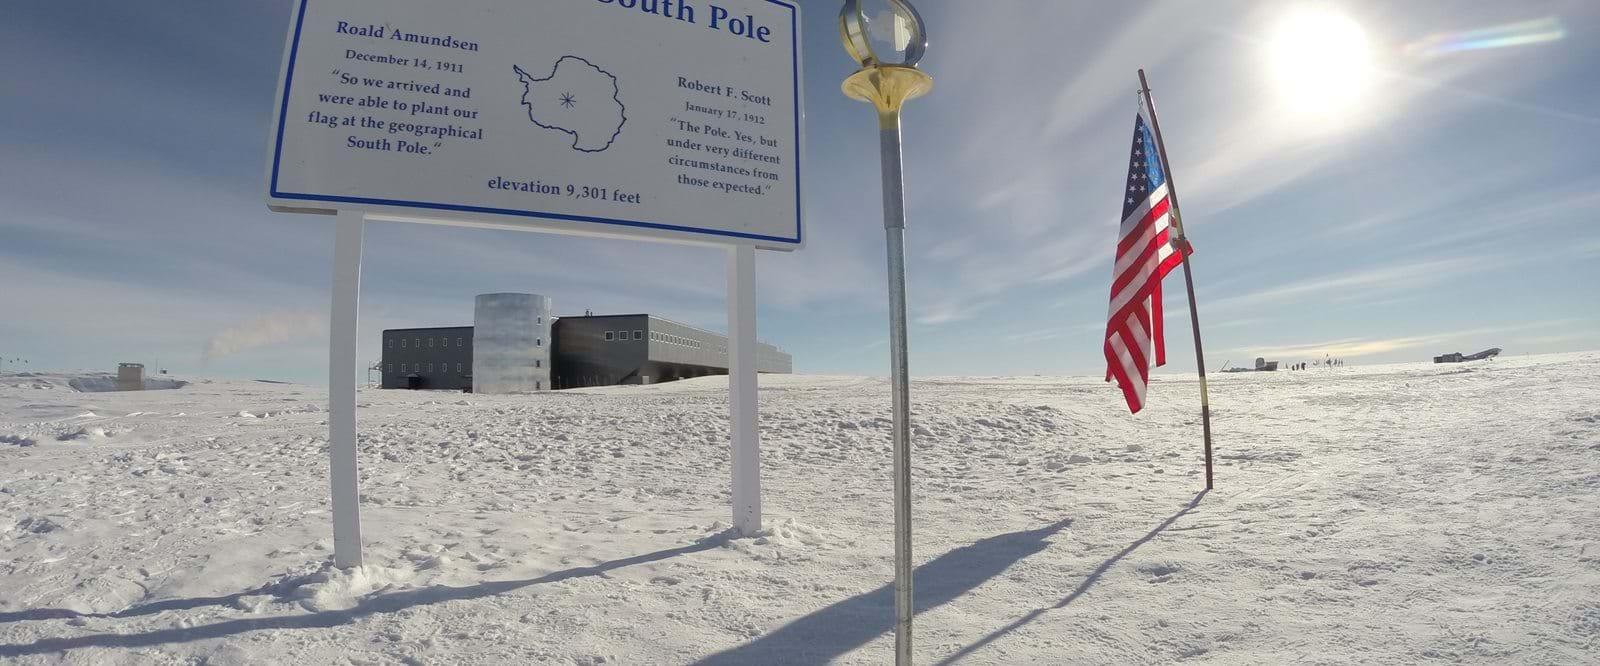 Monument, Geographic South Pole